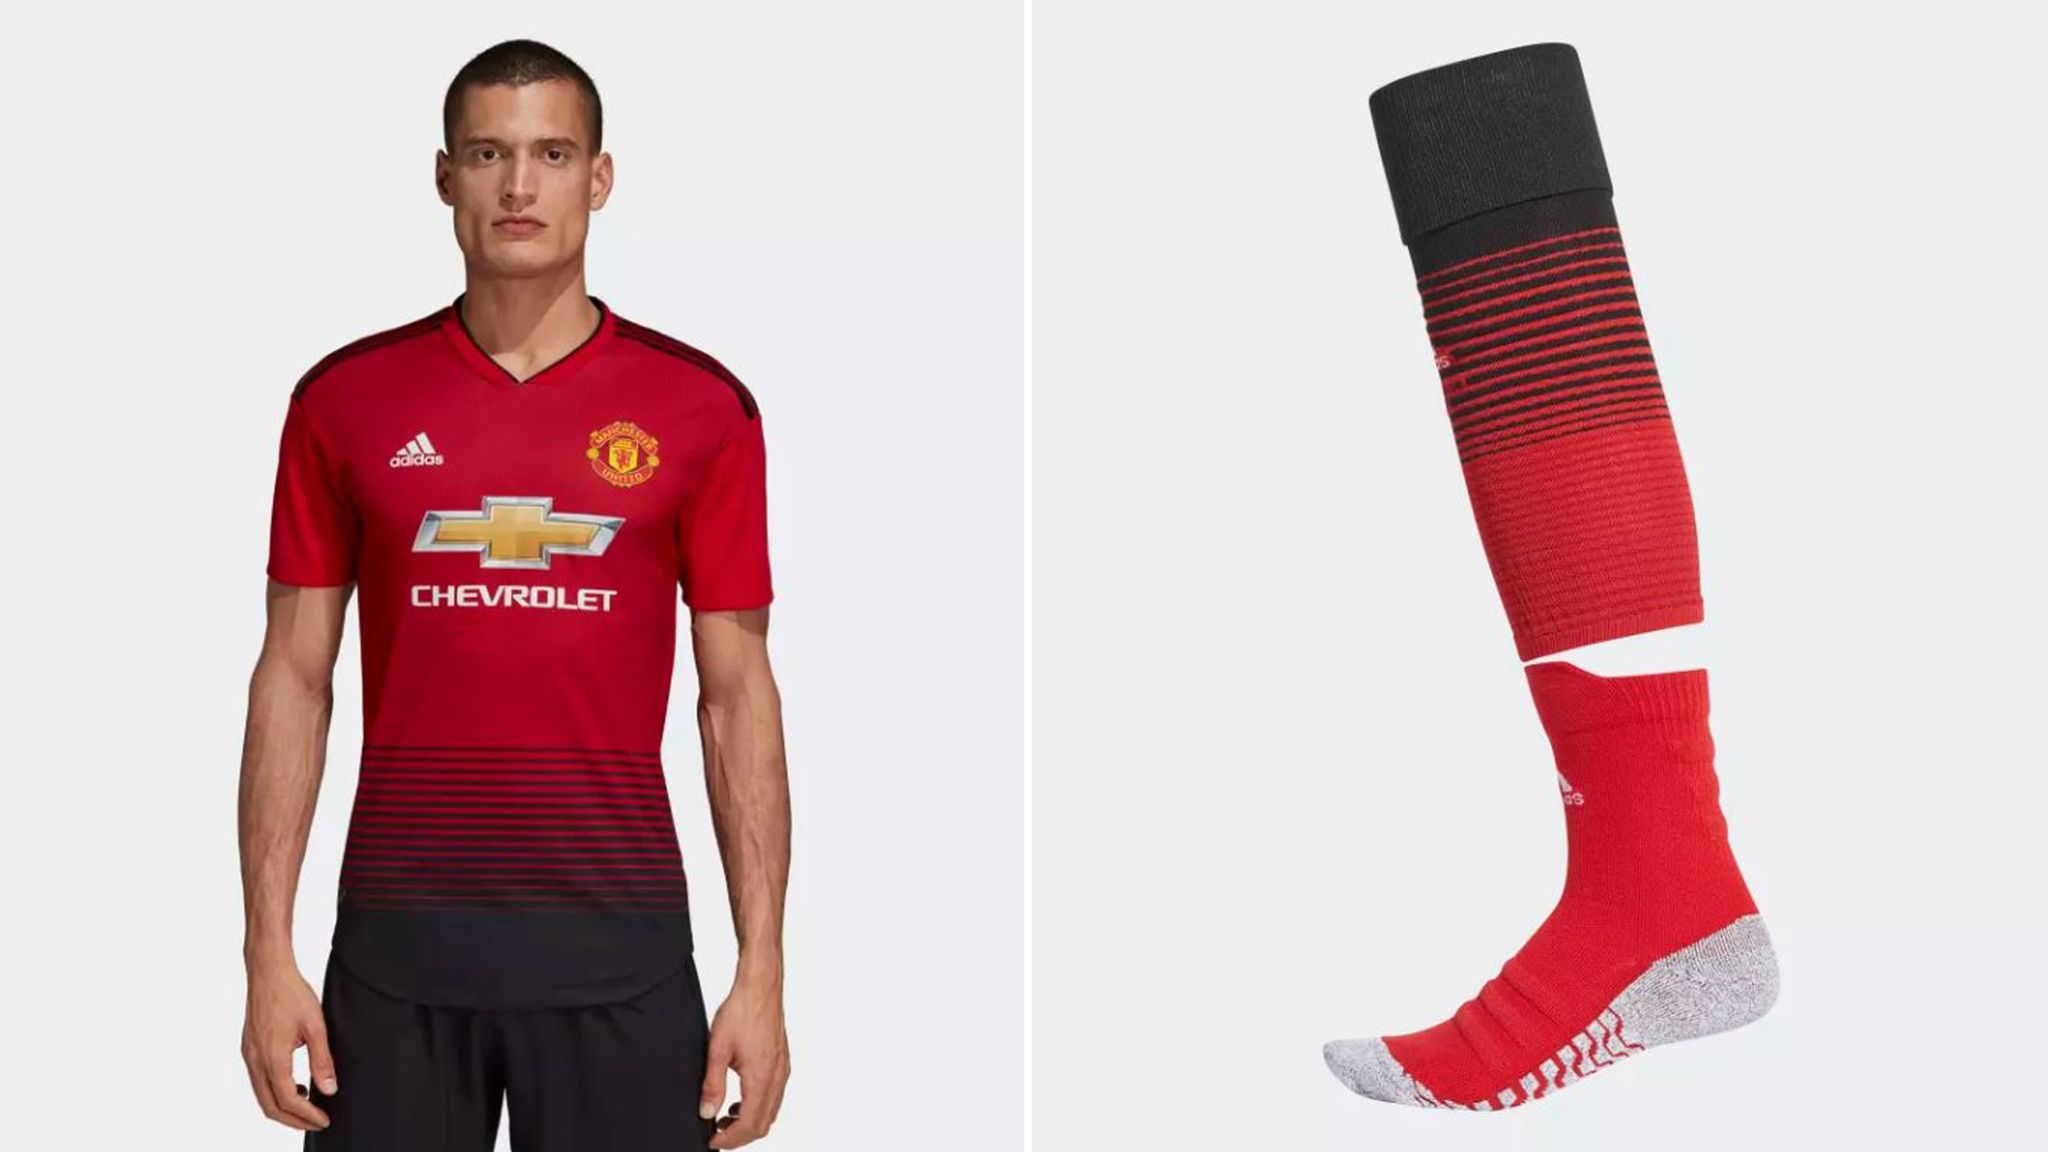 880b47a848d  Disgustingly expensive   Manchester United fans react to £183 price tag  for new home kit